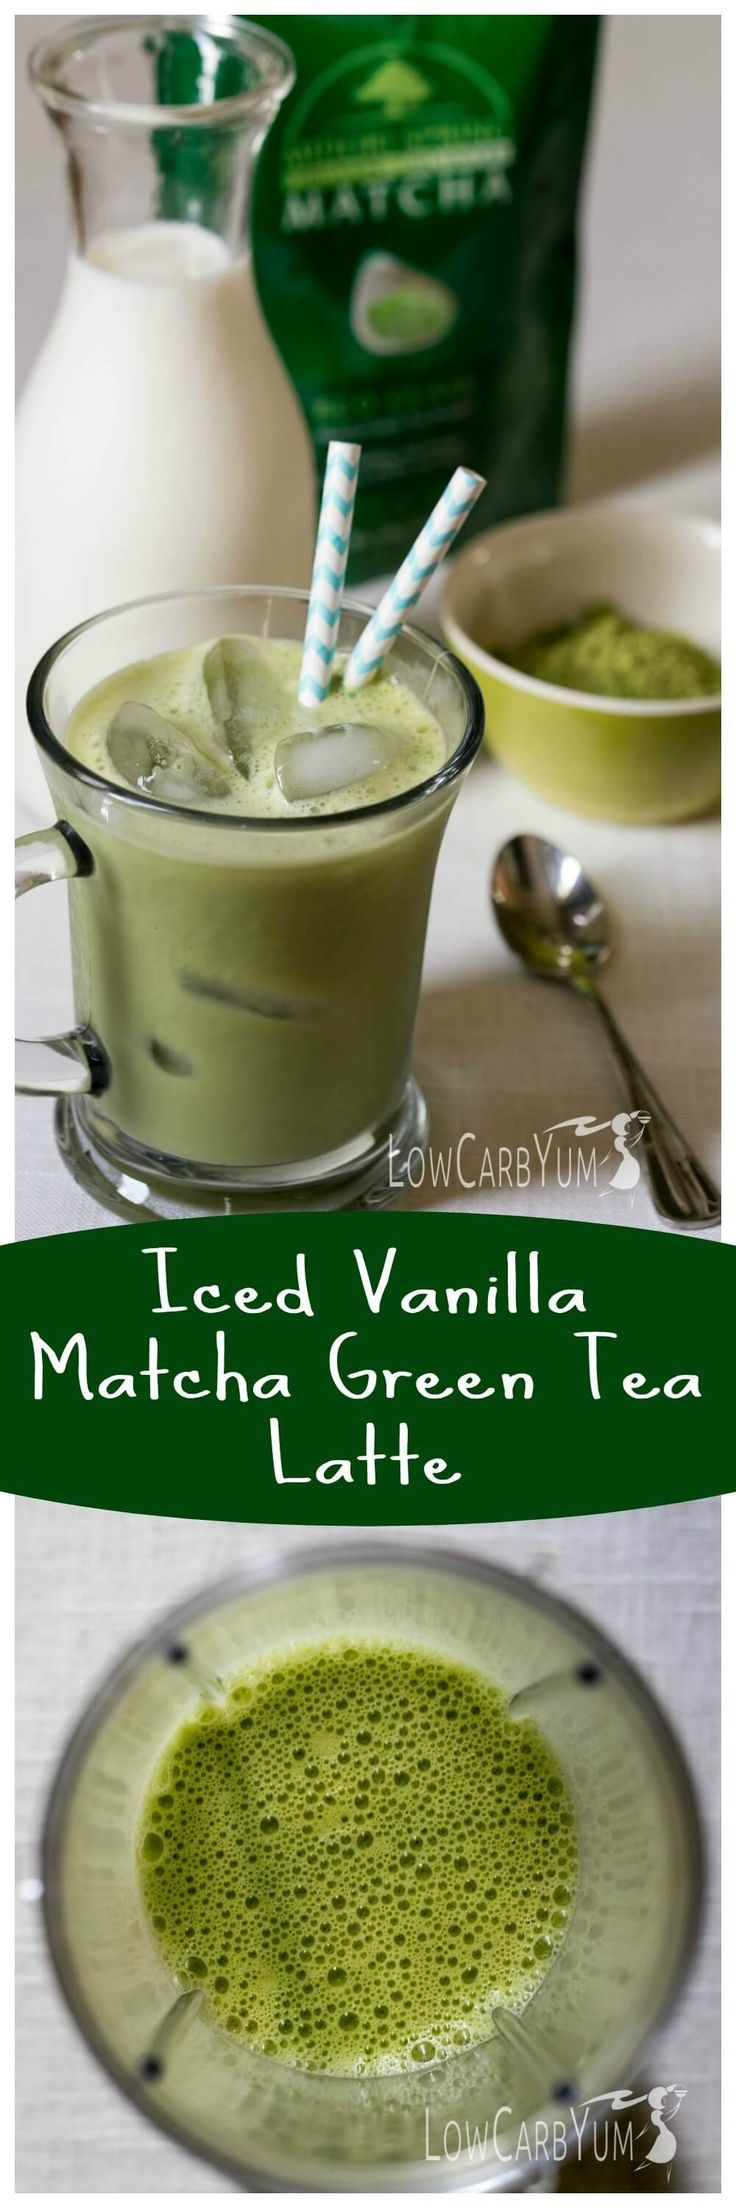 Need a healthier alternative to iced coffee? Try this low carb iced vanilla matcha green tea latte. It's low in calories with less than 1 gram of carbs! LowCarbYum.com/: